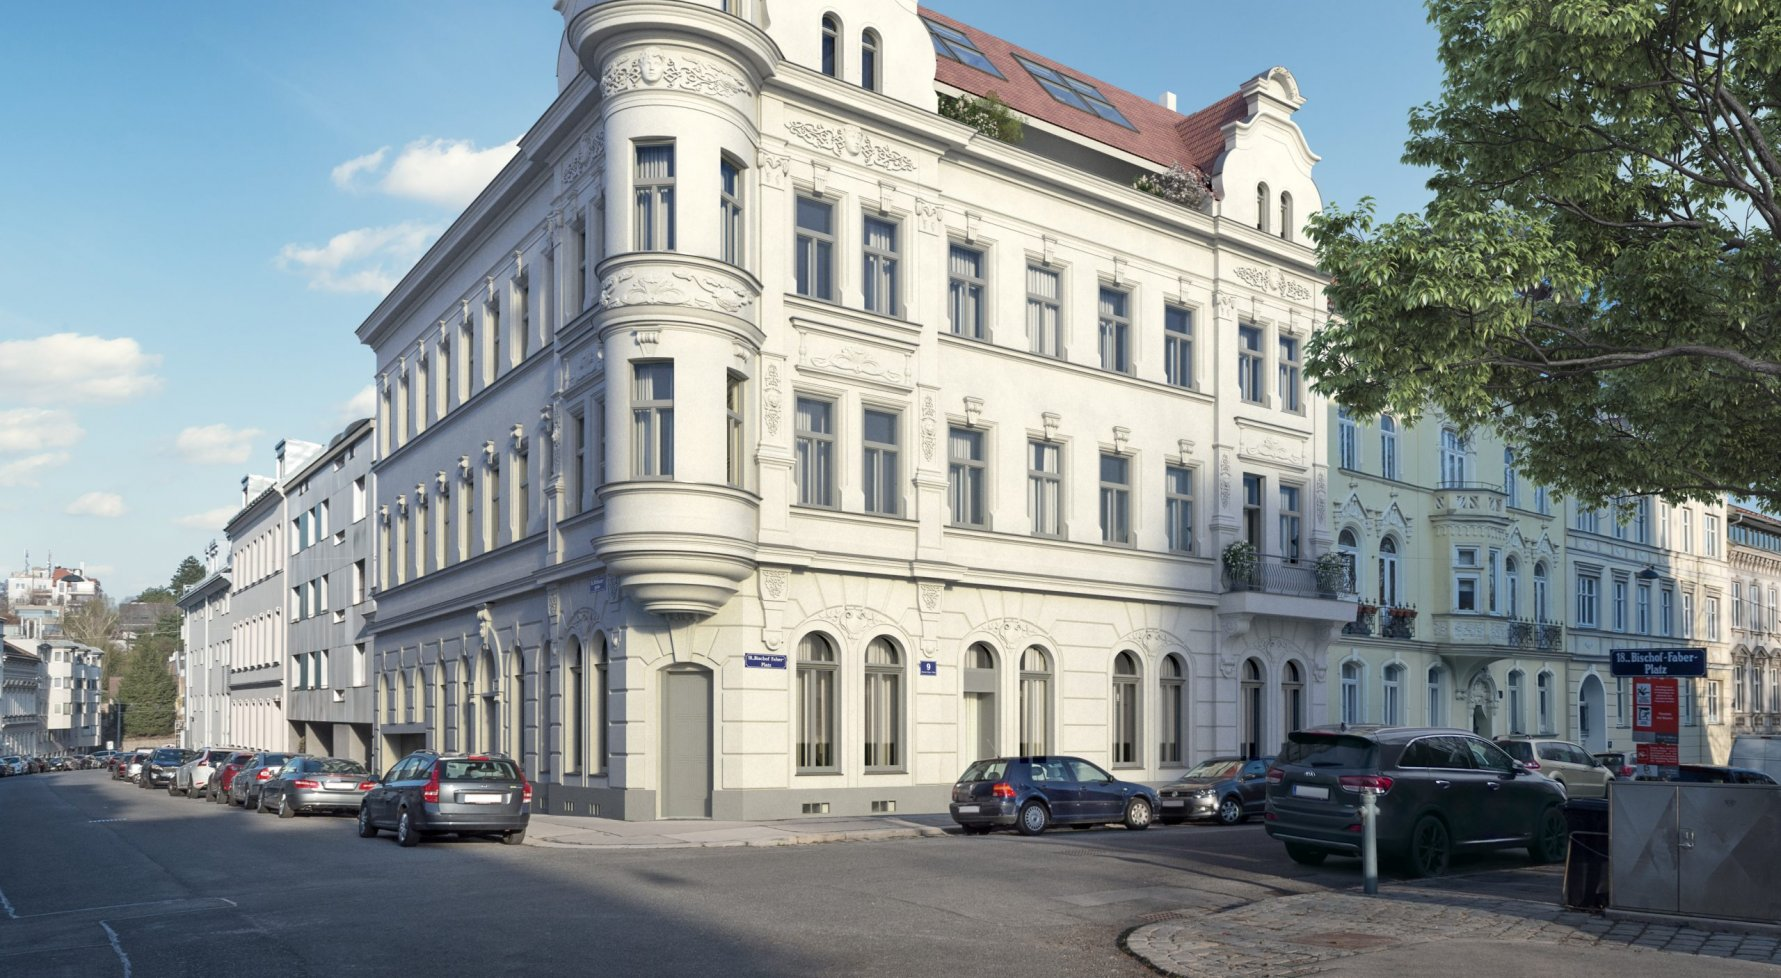 Property in 1180 Wien, 18. Bezirk: Fantastic old-building apartment with charm in the 18th district! - picture 1